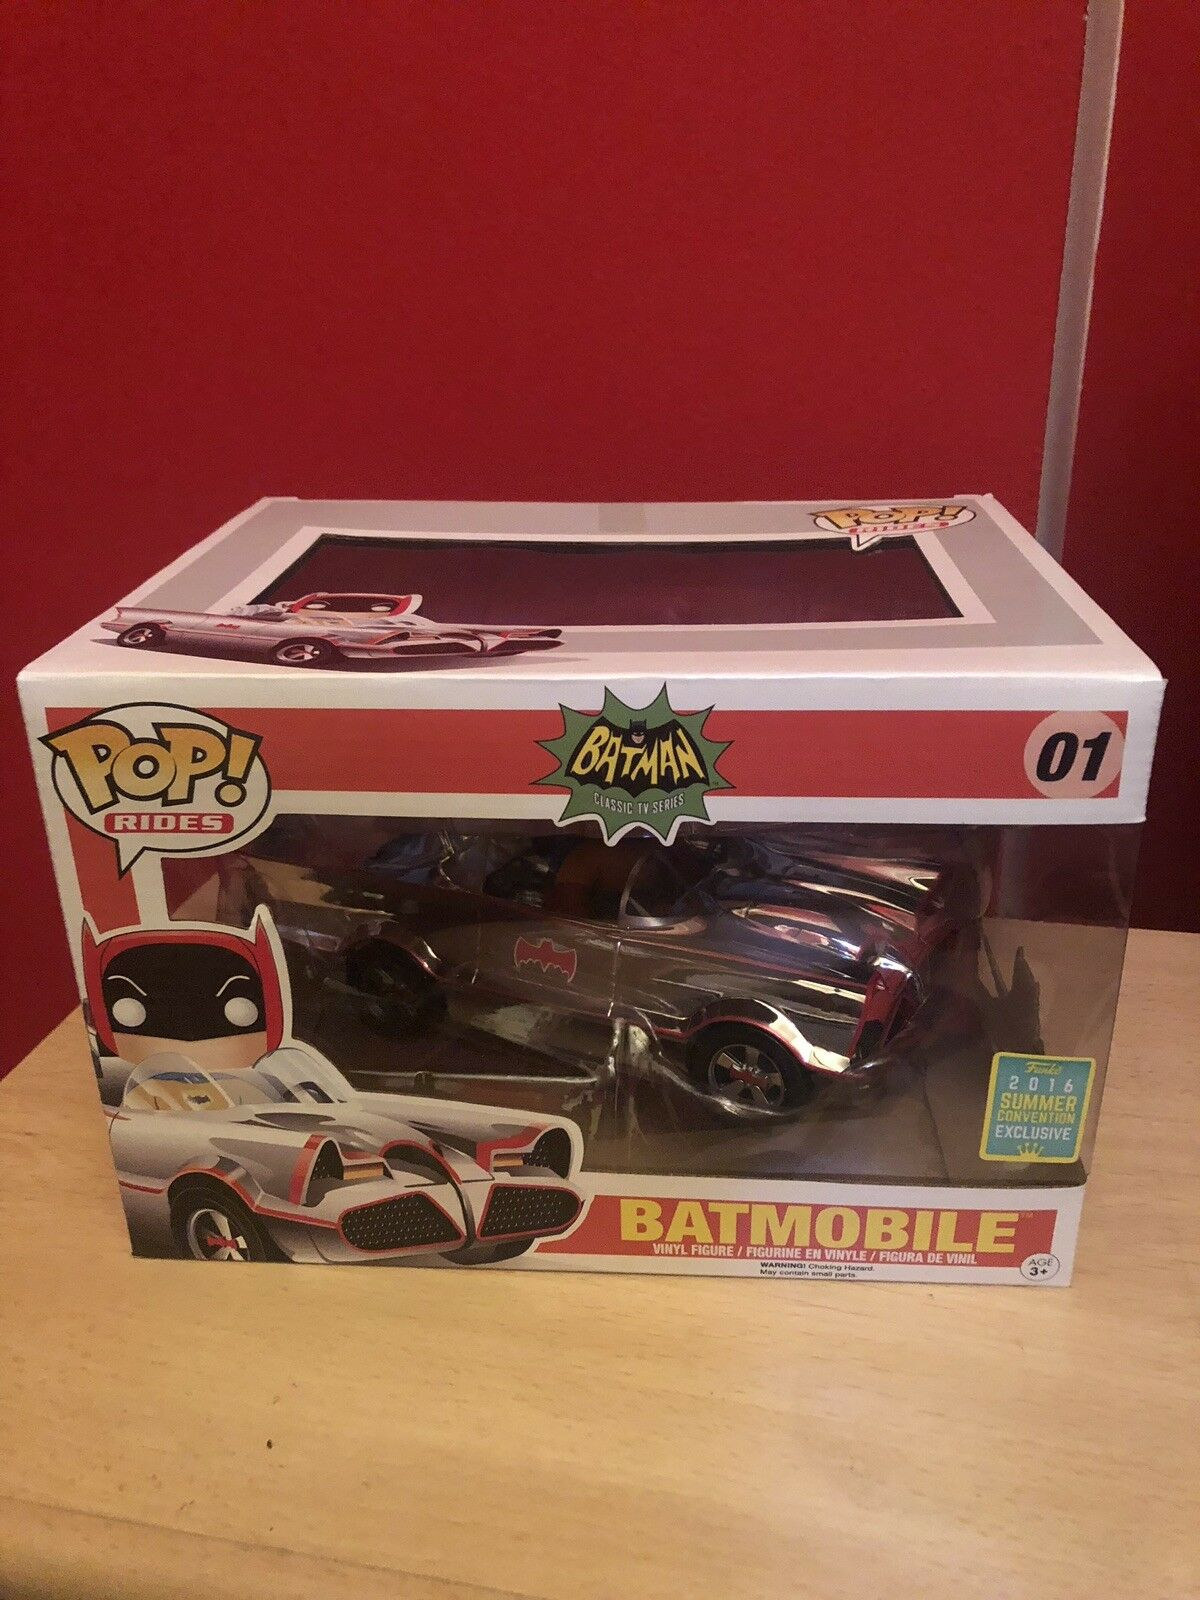 Funko Pop BatMobile 2016 Summer Convention Exclusive